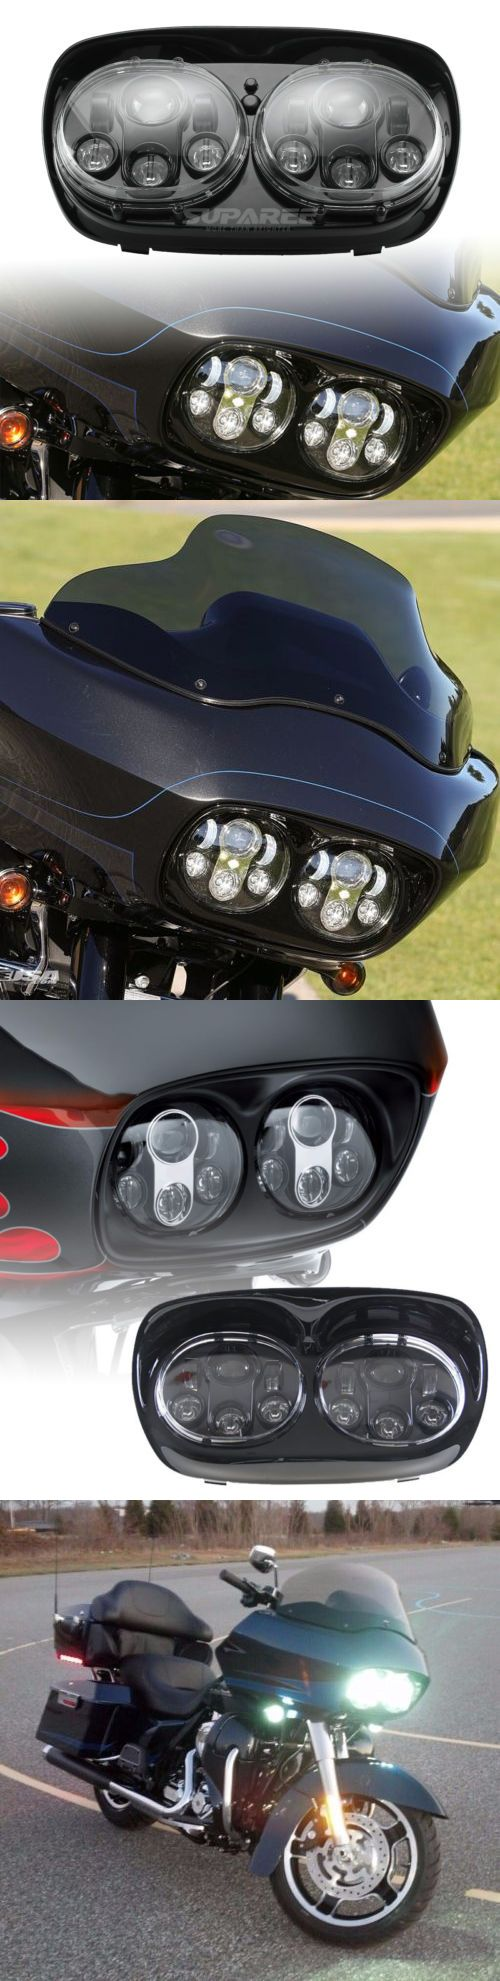 motorcycle parts: Dual Led Headlight Assembly Hi Lo Beam 90W Black For Harley-Davidson Road Glide -> BUY IT NOW ONLY: $145.91 on eBay!